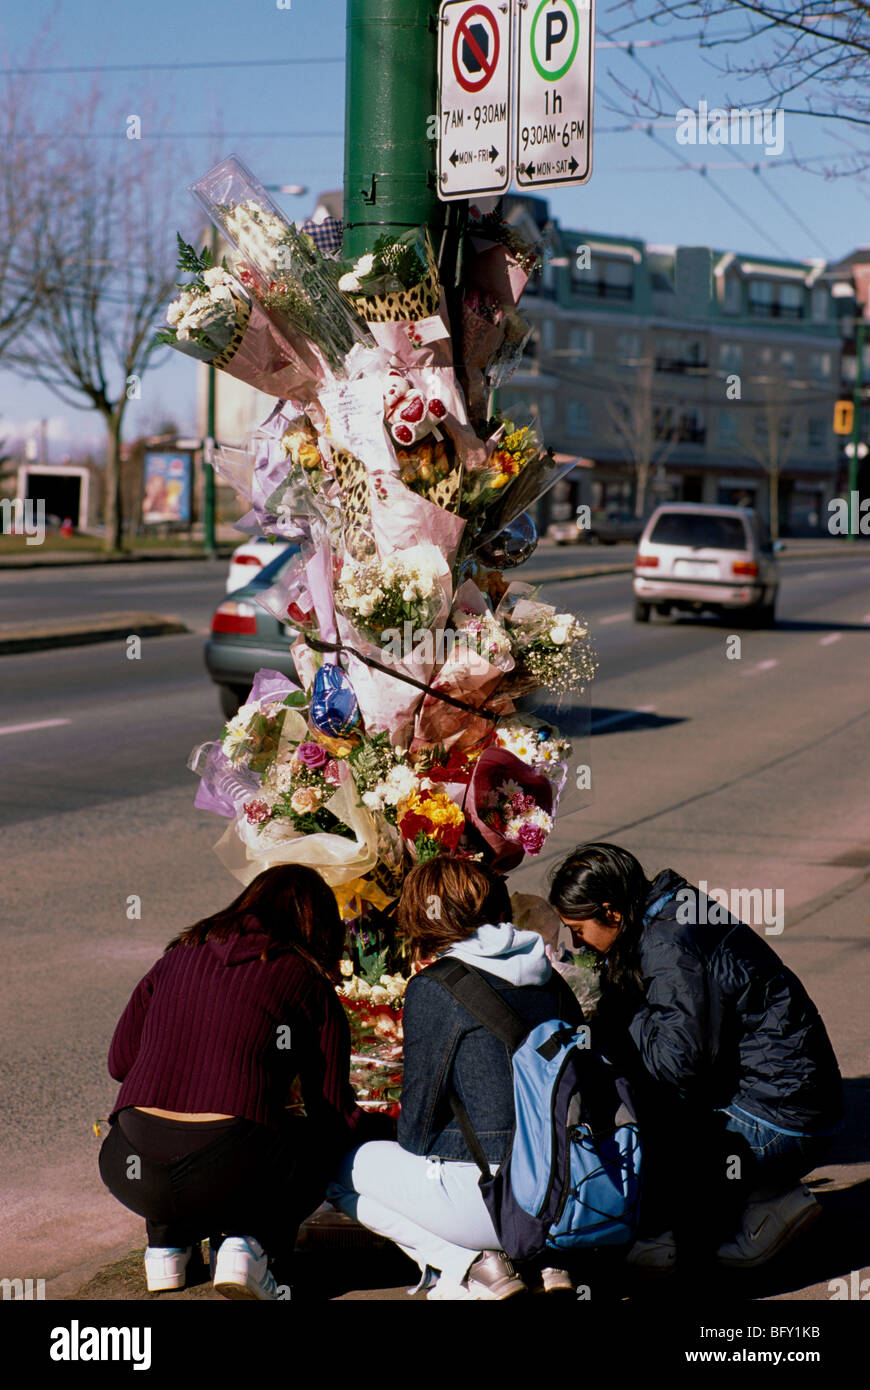 stock photo teenage girls at roadside memorial shrine of flowers for victims killed in fatal car accident vancouver british columbia canada